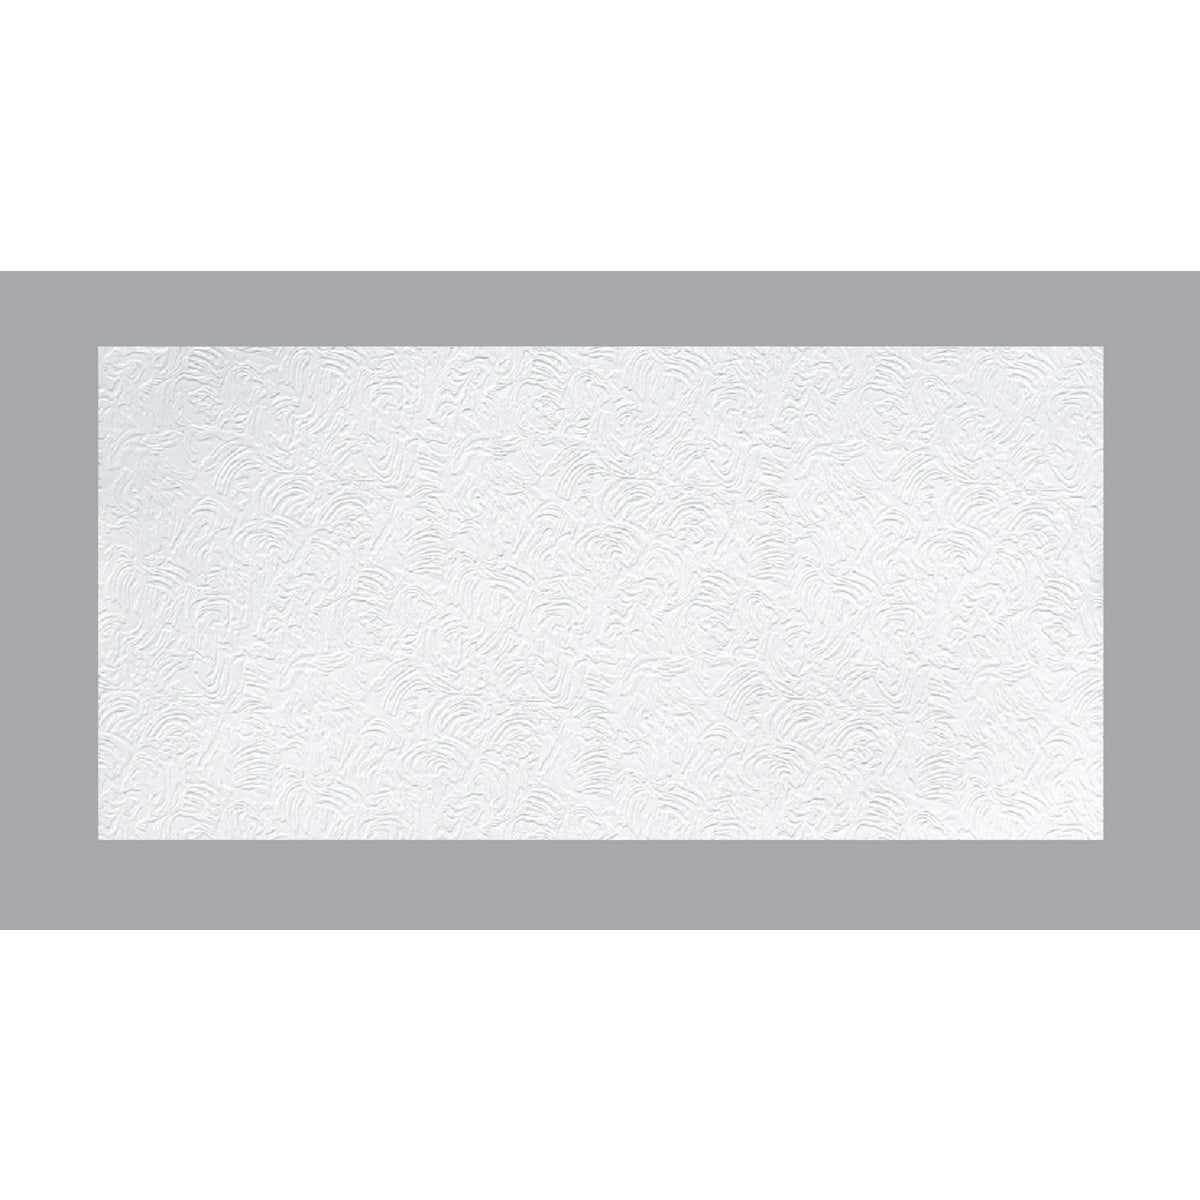 2X4 CARAVEL CEILING TILE - BLCAR by Bldg Prod Canada Cor